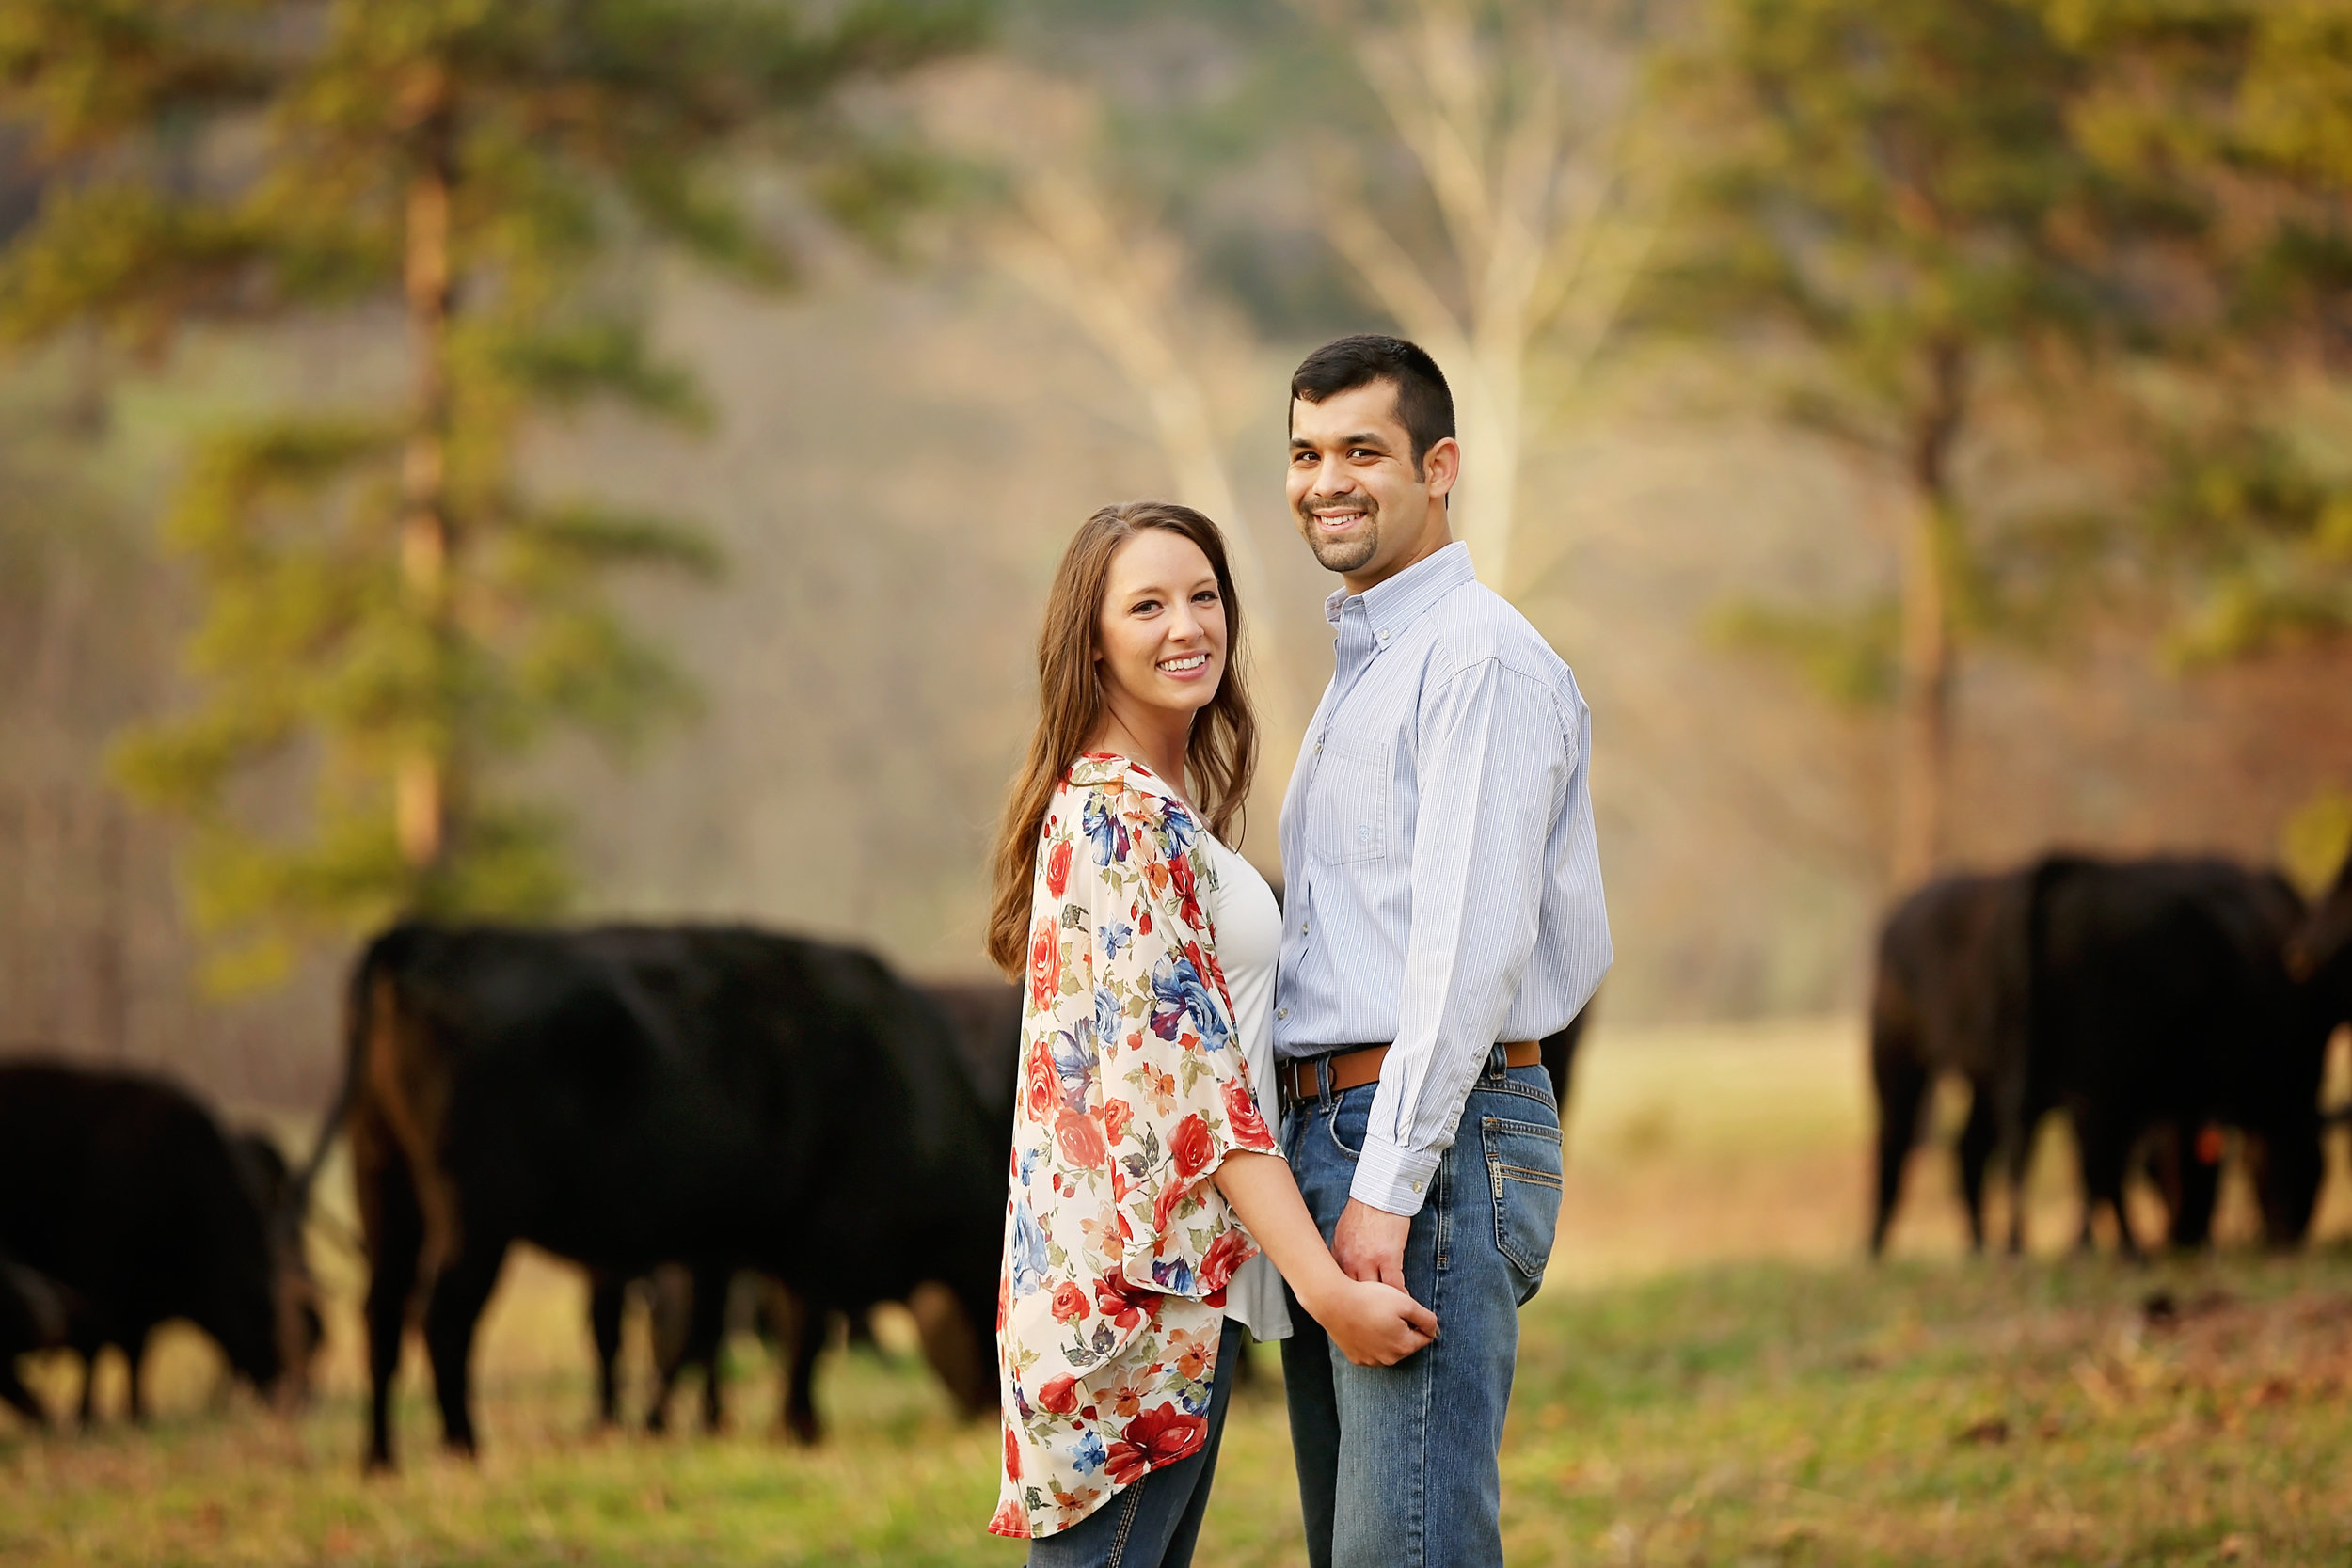 Jessica + Chris are really so fun to work with. We did part 1 of their engagement session in the fall of 2016 + met again in spring of 2017 before their April 2017 wedding. This second set of pictures we took on their farm ground near Ozark, AR. Their wedding in April just happened to be the weekend of the 100 year flood. I'll never forget it because of the rain and because of how well they handled the situation.